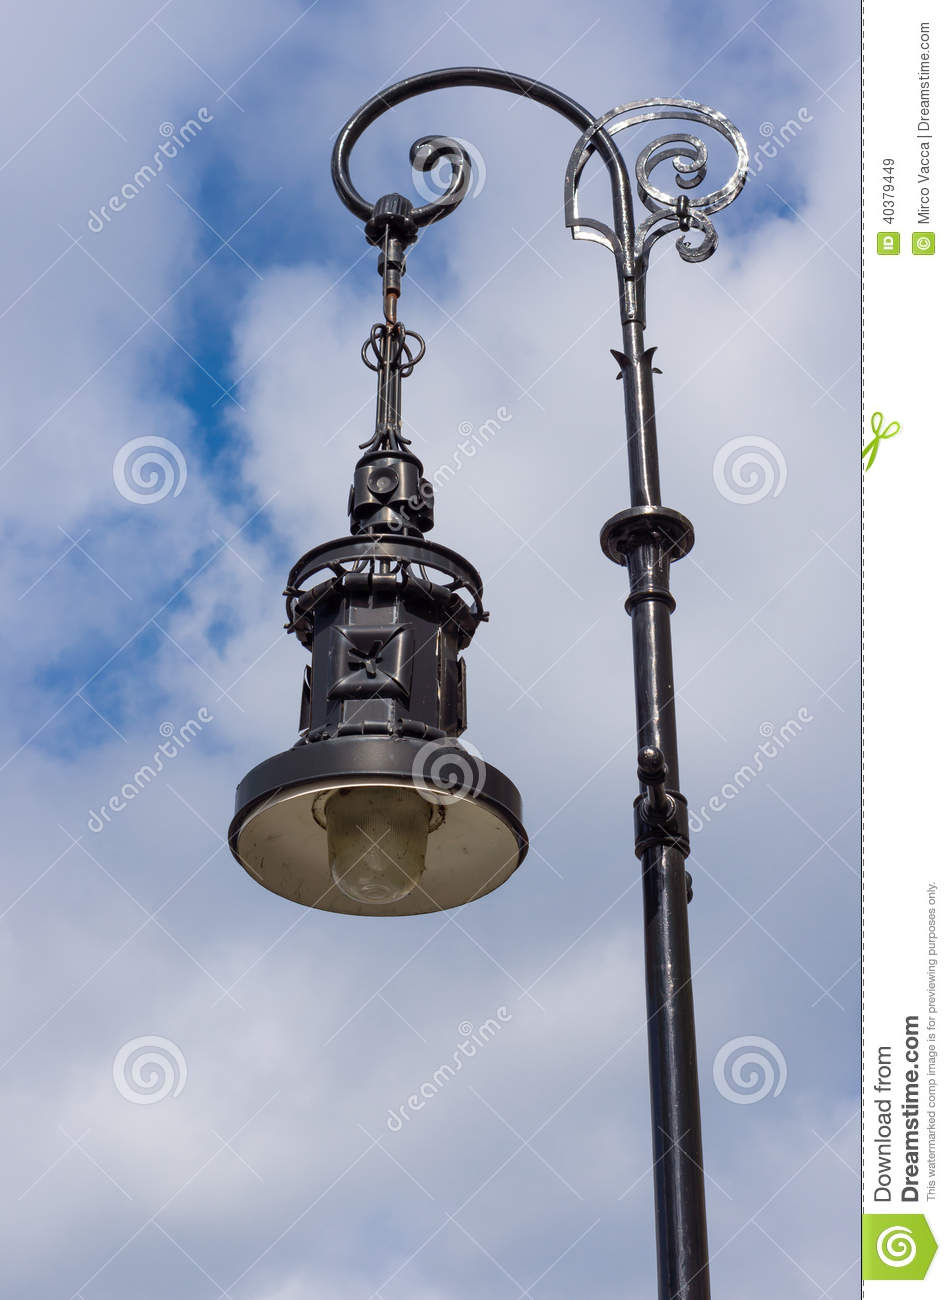 Classic street lamp stock image. Image of street, electric - 40379449 for Classic Street Lamp  54lyp